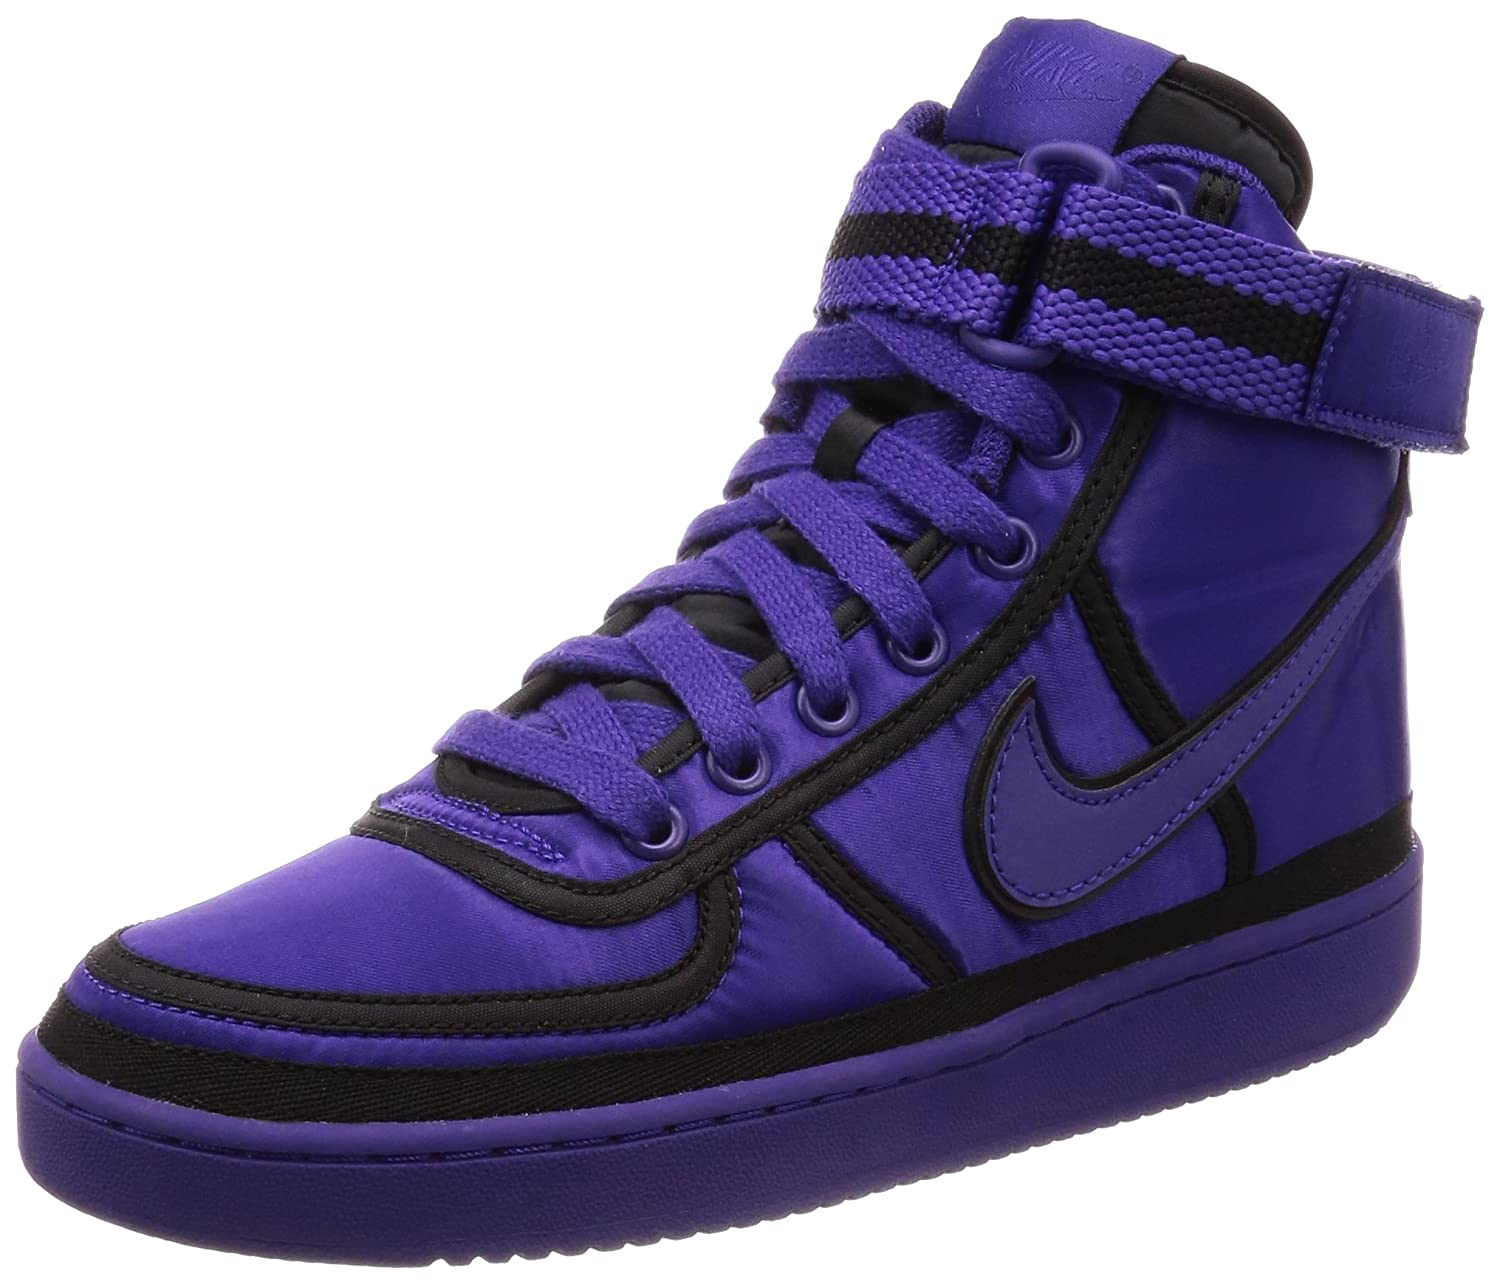 5e840a12fe7 NIKE Vandal High Supreme Qs Prpl Mens Aq2176-500  Amazon.co.uk  Shoes   Bags